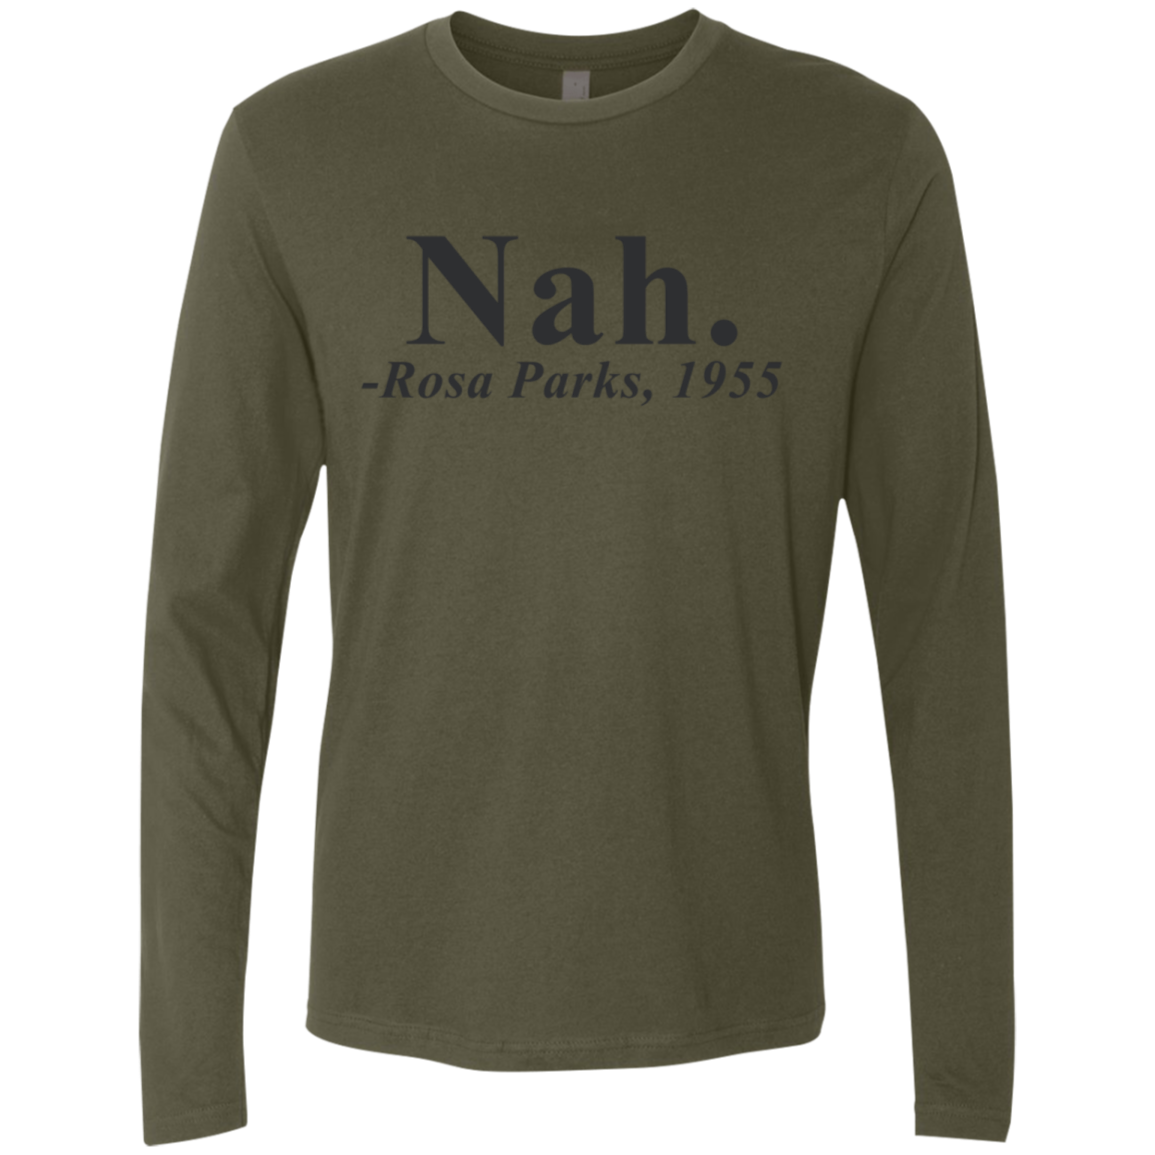 Nah - Rosa Parks Men's Long Sleeve Tee